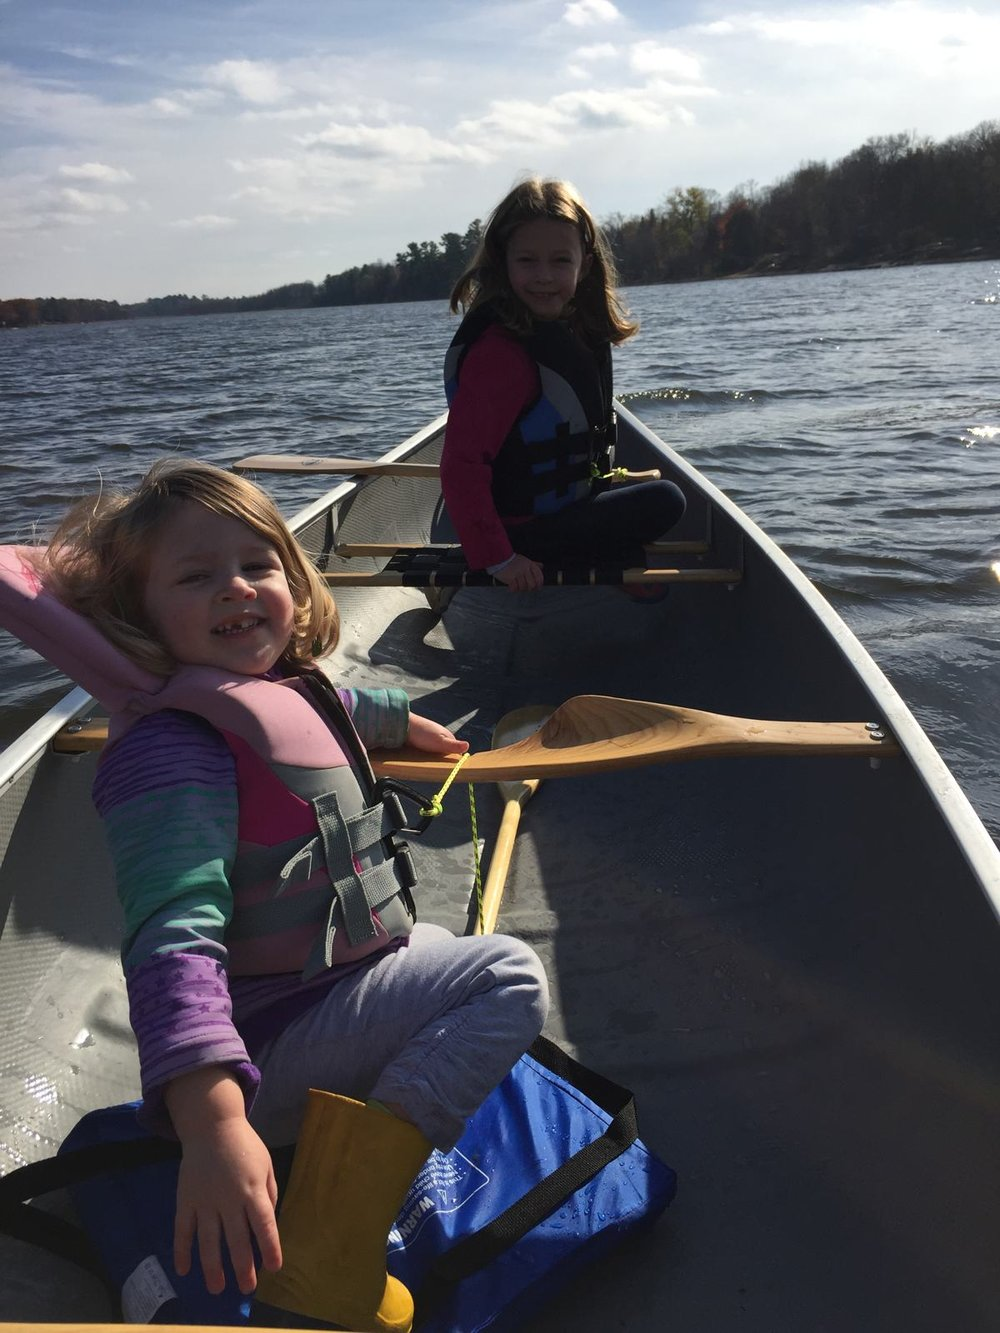 Jeff Dean - The Ottawa River with my 2 daughters